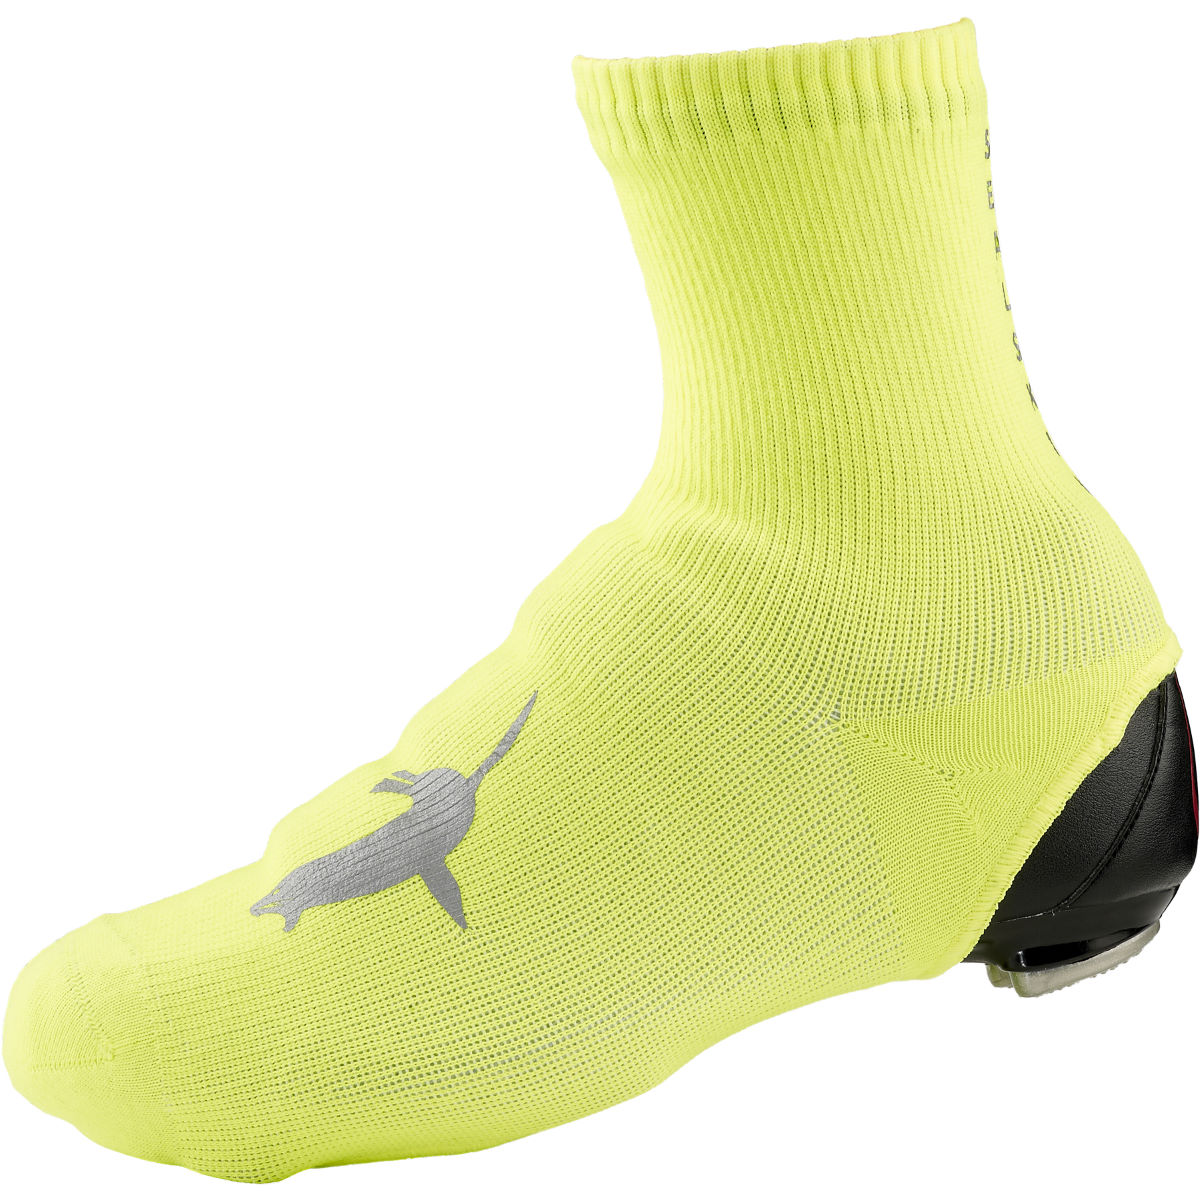 Couvre-chaussures SealSkinz Waterproof - L Jaune Couvre-chaussures